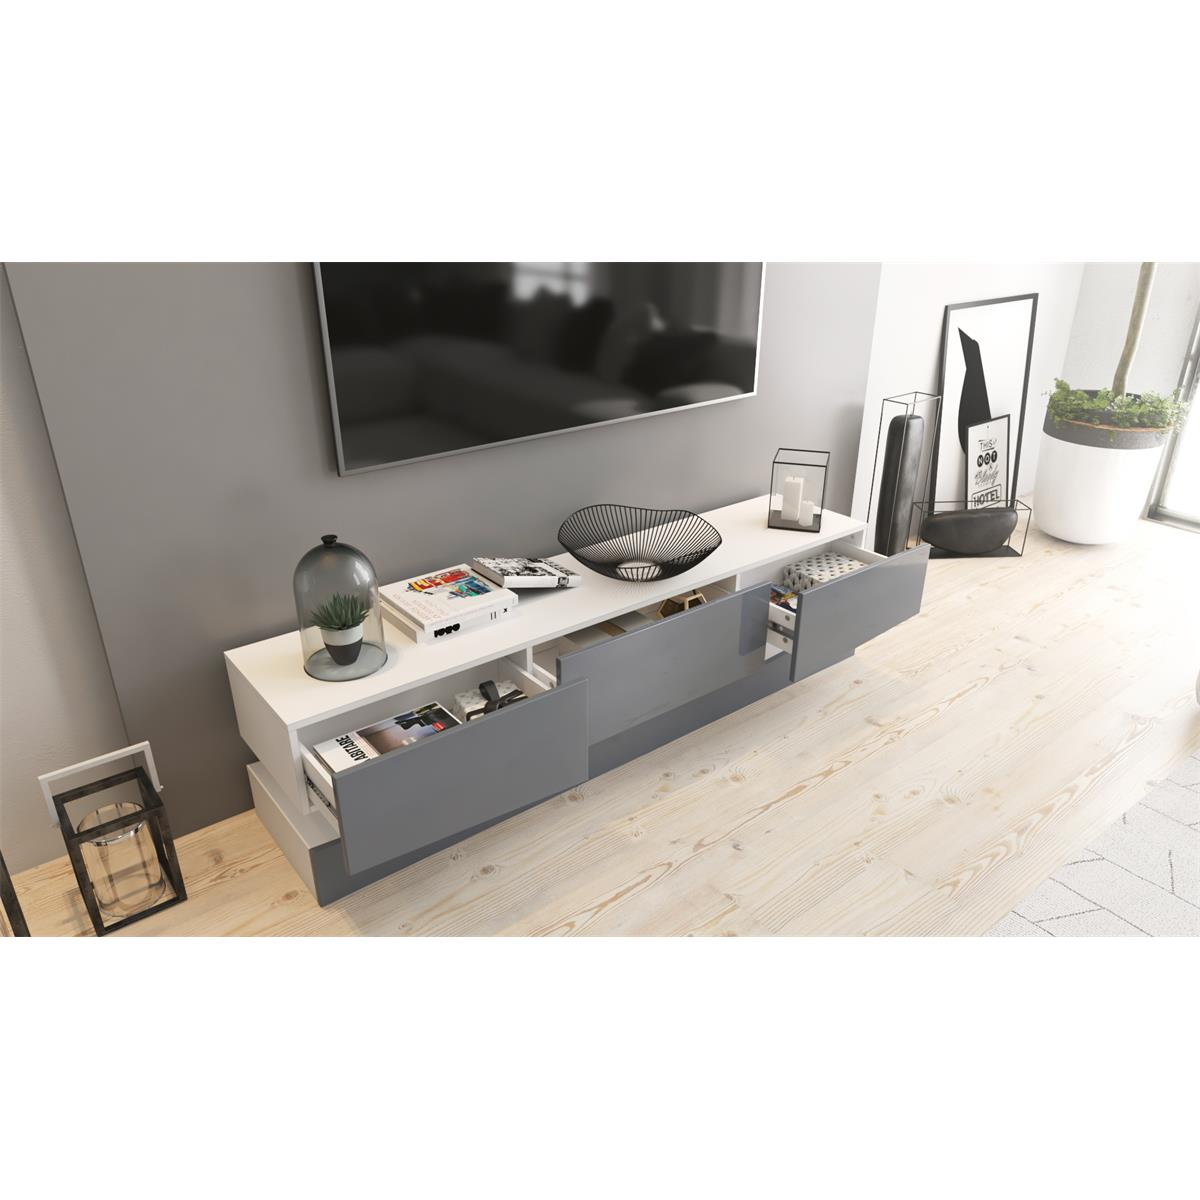 Tv Board Lowboard City Tv Board City Mit Schubkästen Und Sockel Led Optional